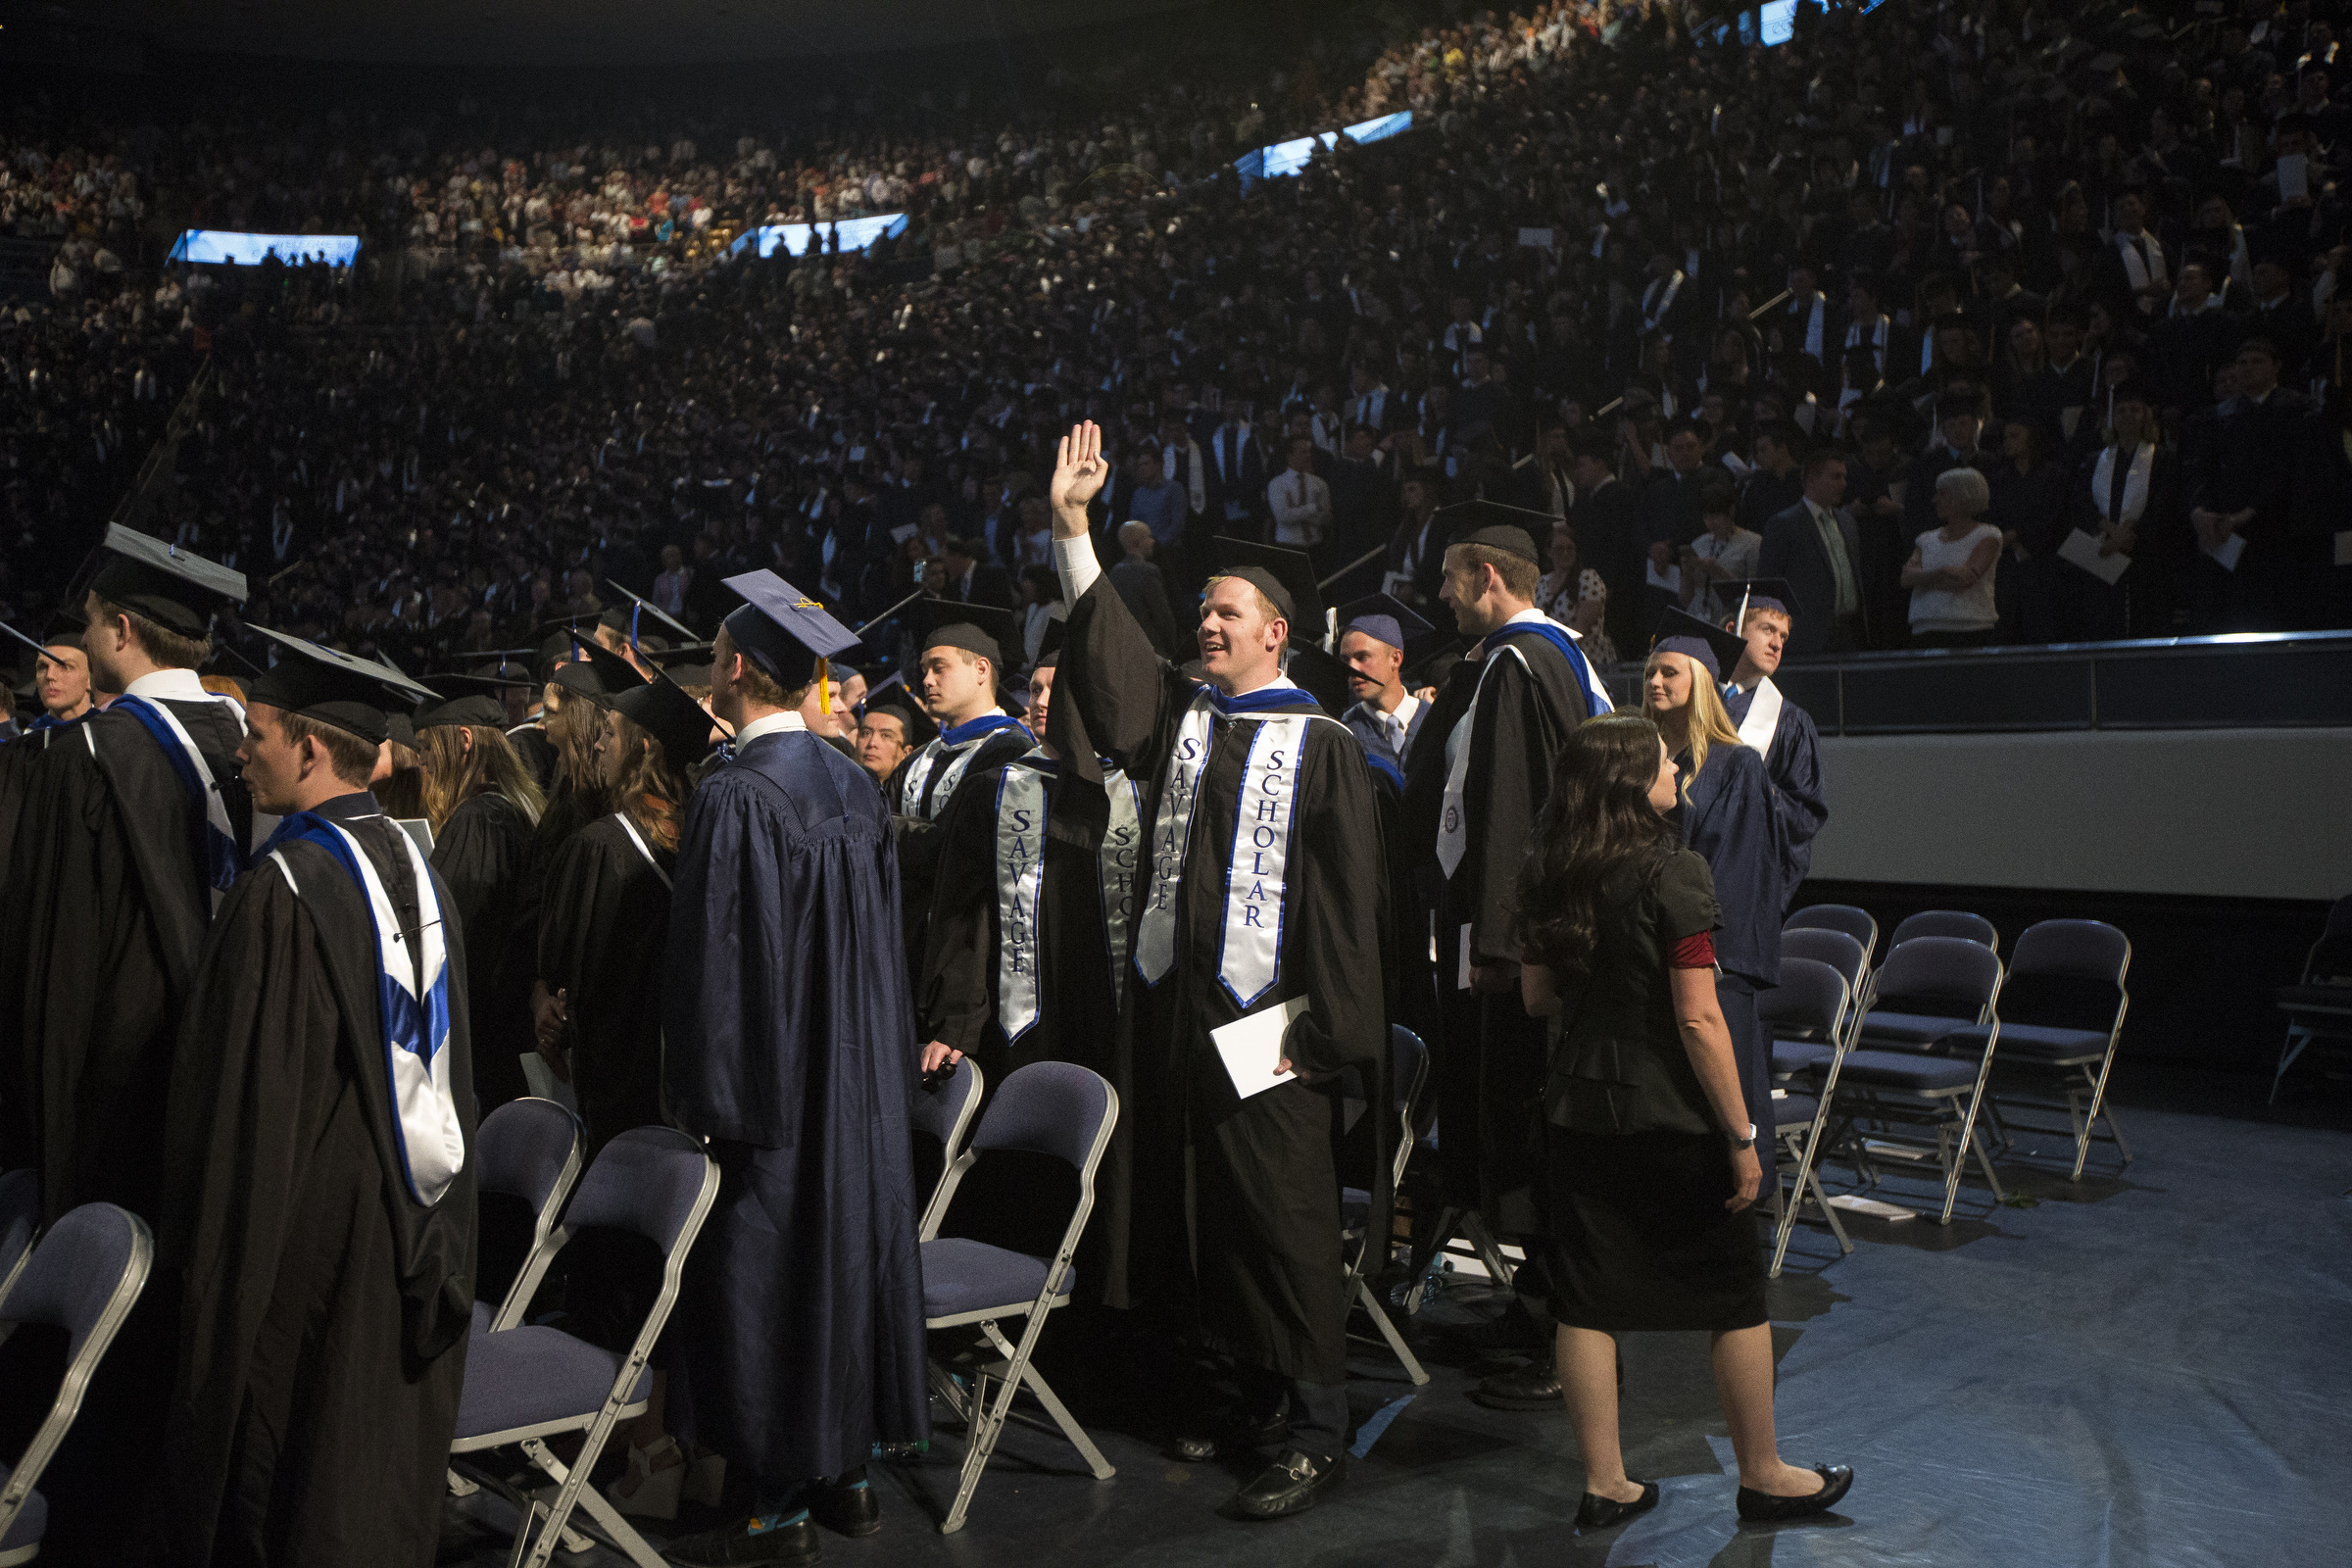 BYU graduate Josh Tidwell, of San Diego, California, waves to family as graduates make their way out of the Marriott Center during Brigham Young University's commencement ceremony Thursday, April 26, 2018, in Provo. BYU is awarding nearly 6,300 degrees to graduates this week.